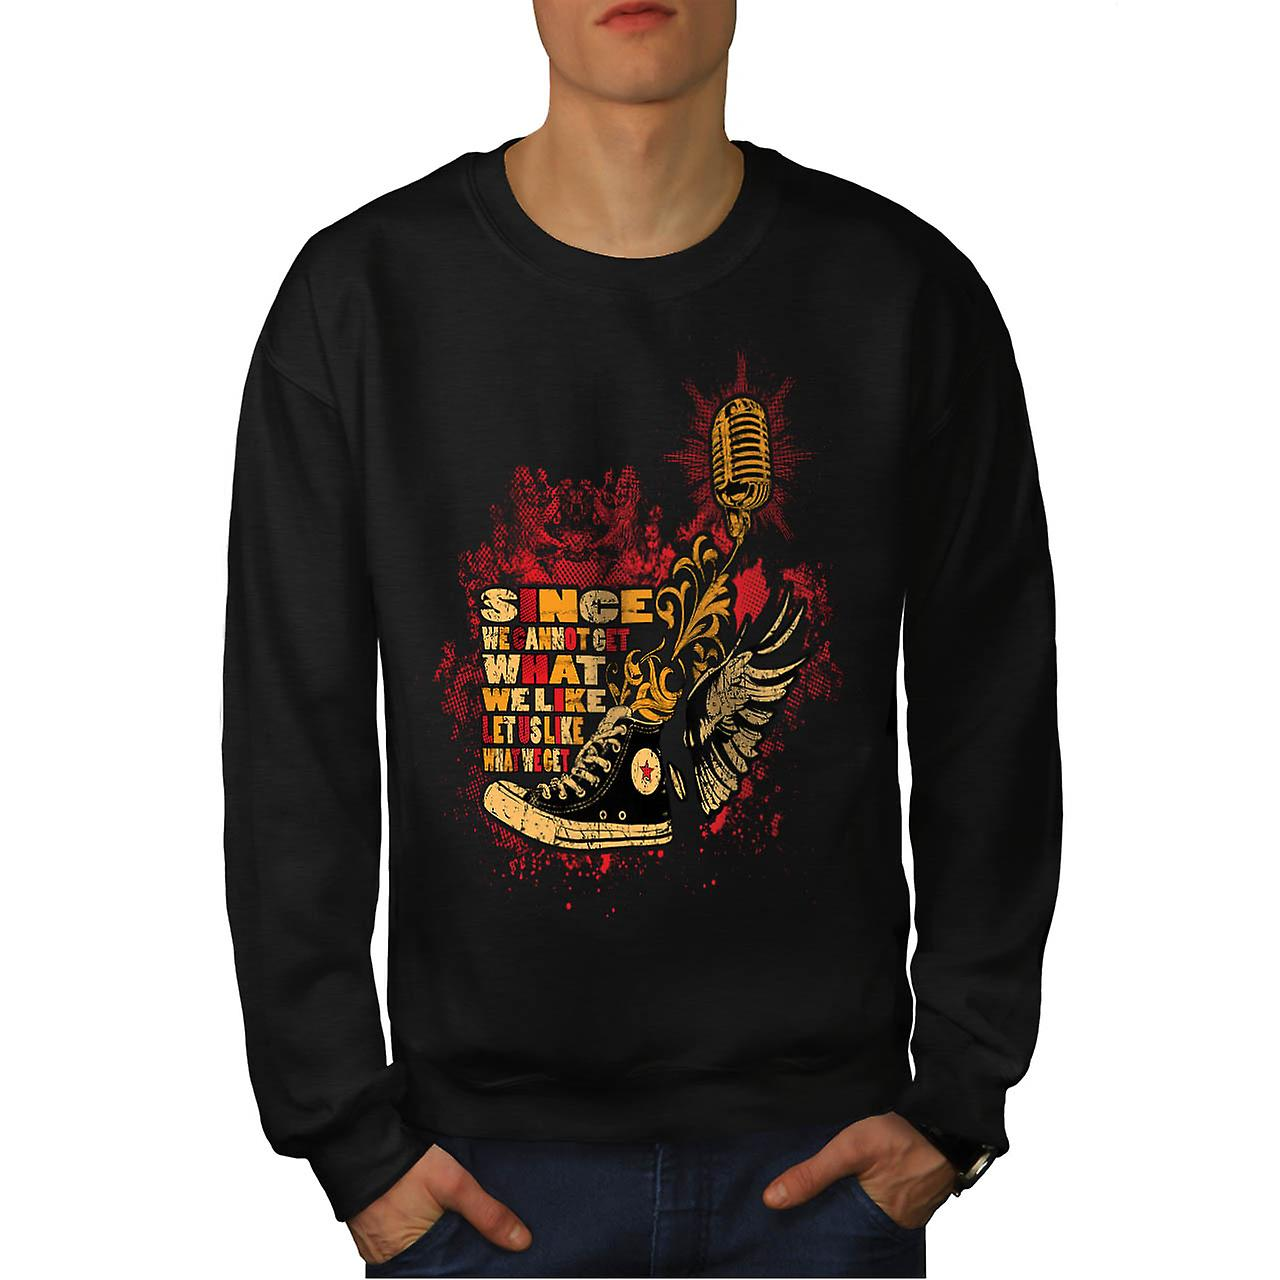 Like What You Get Youth Life USA Men Black Sweatshirt | Wellcoda